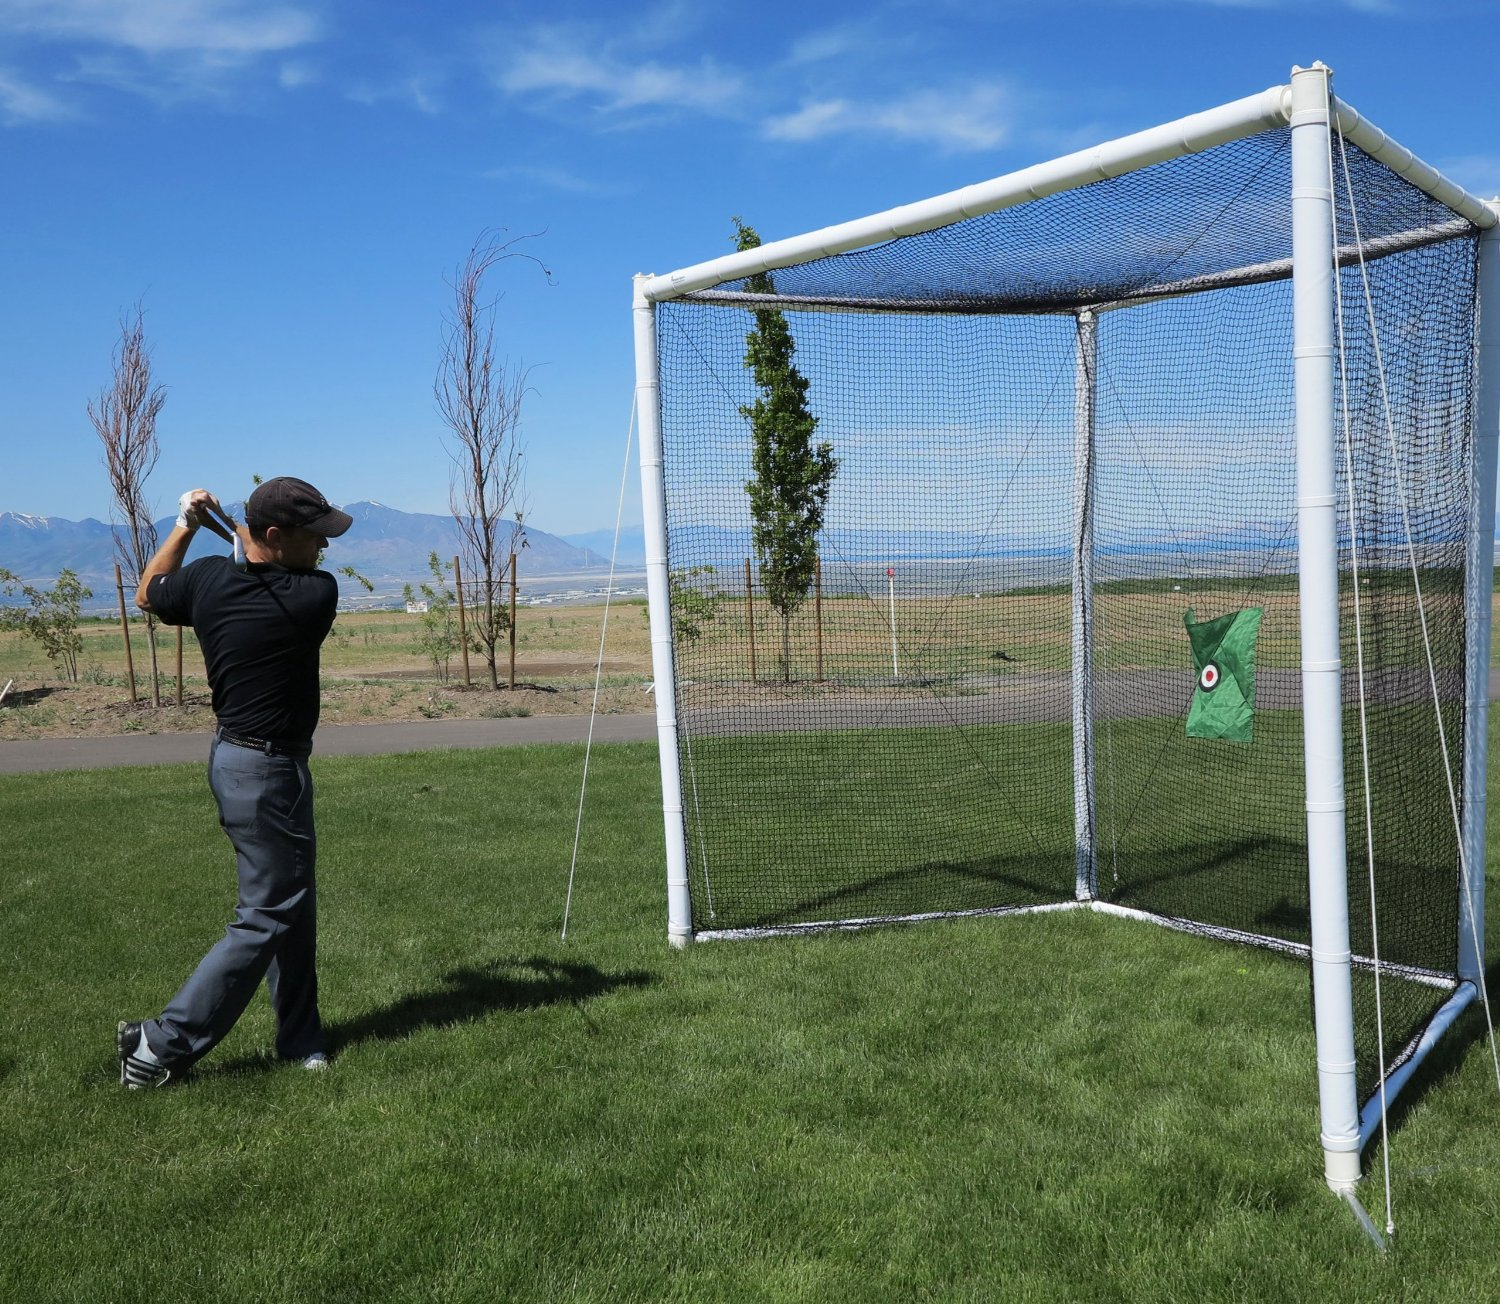 Best Backyard Golf Net buy golf driving nets & practice hitting cages for lowest prices!